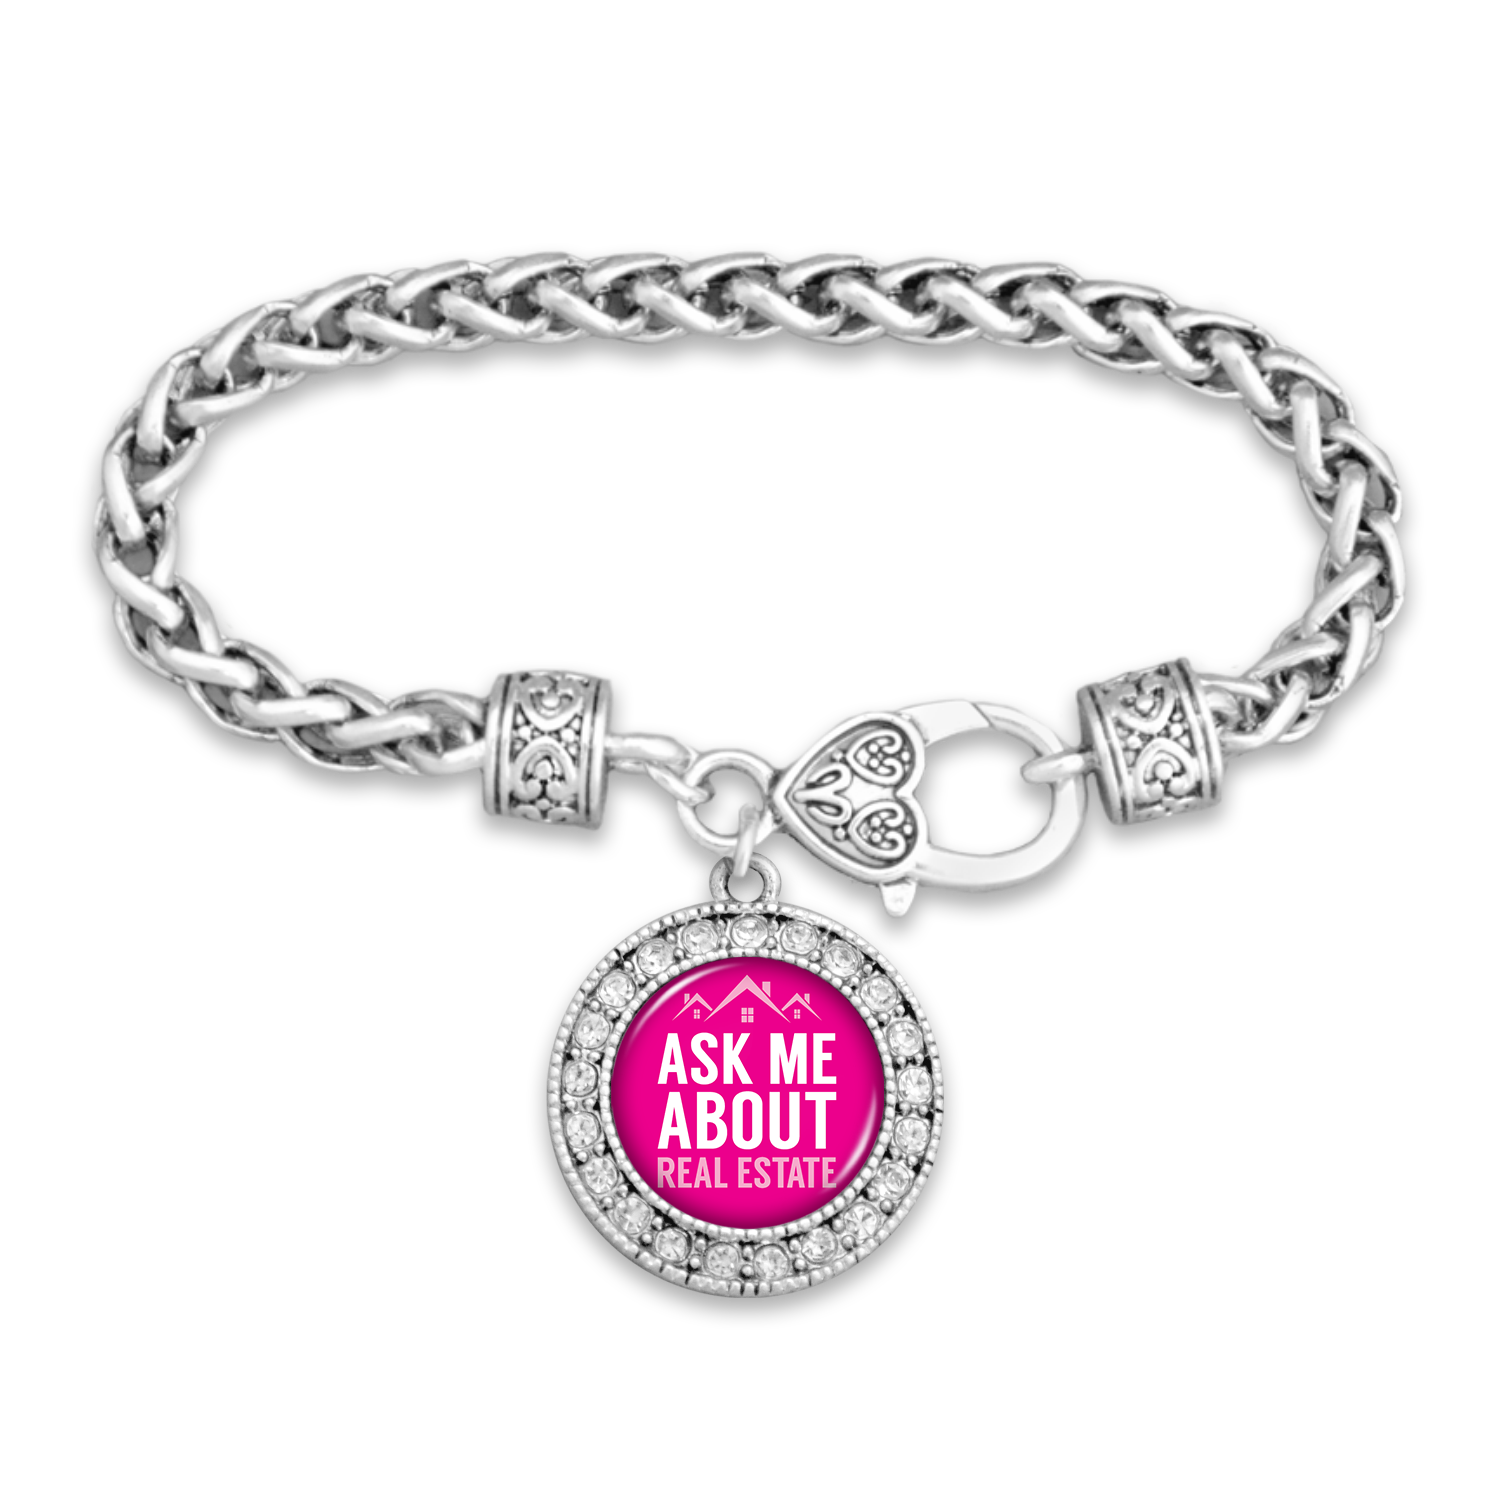 Ask Me About Real Estate Clasp Bracelet